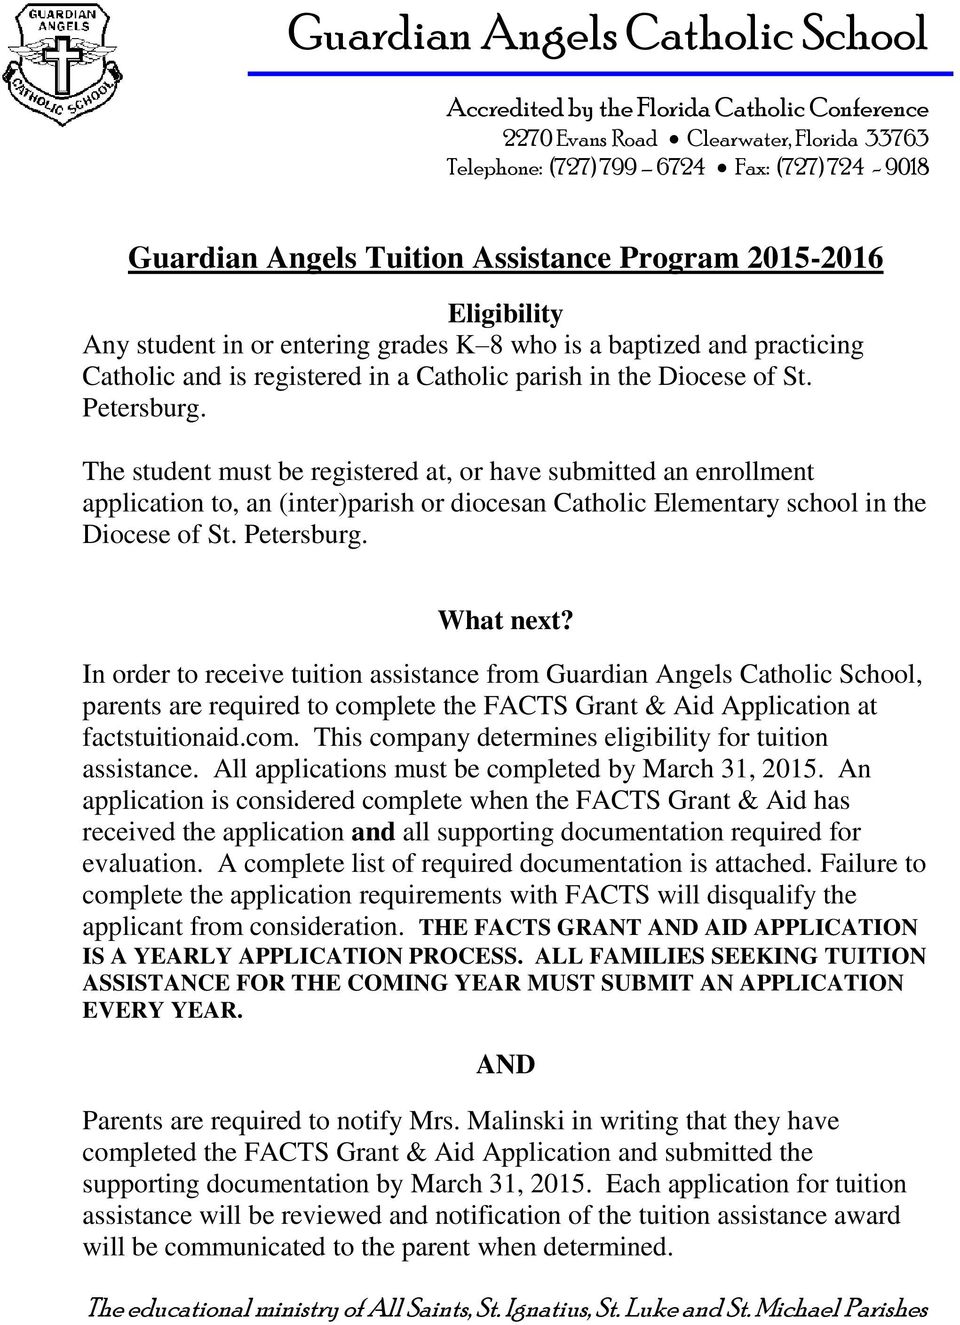 The student must be registered at, or have submitted an enrollment application to, an (inter)parish or diocesan Catholic Elementary school in the Diocese of St. Petersburg. What next?